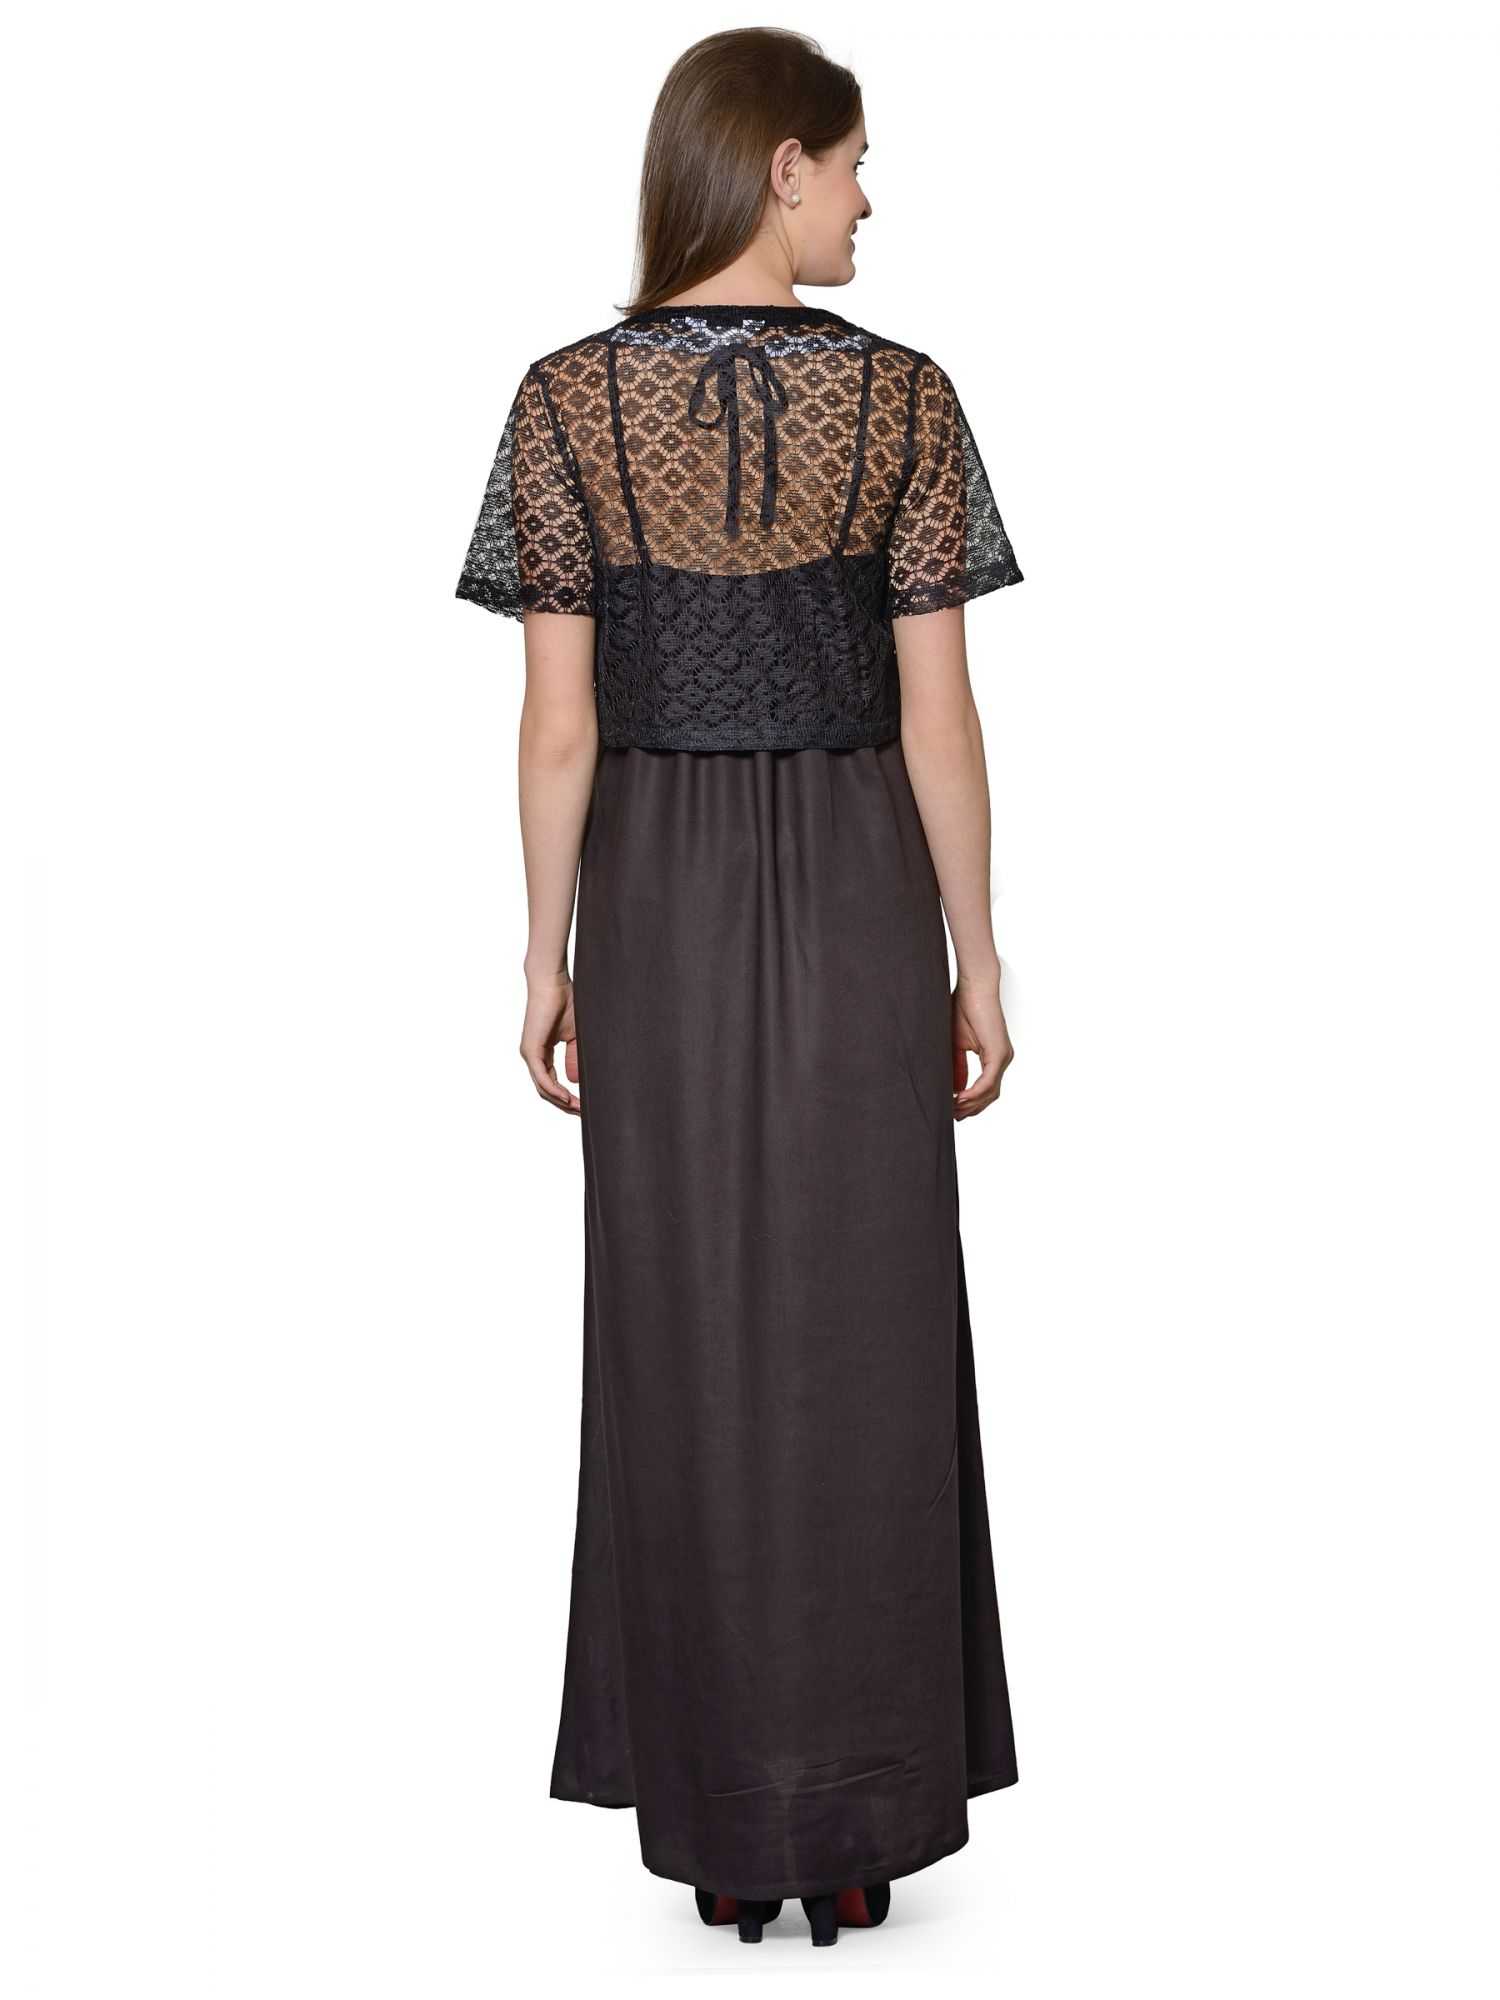 Lace Work Nighty with Shrug in Black